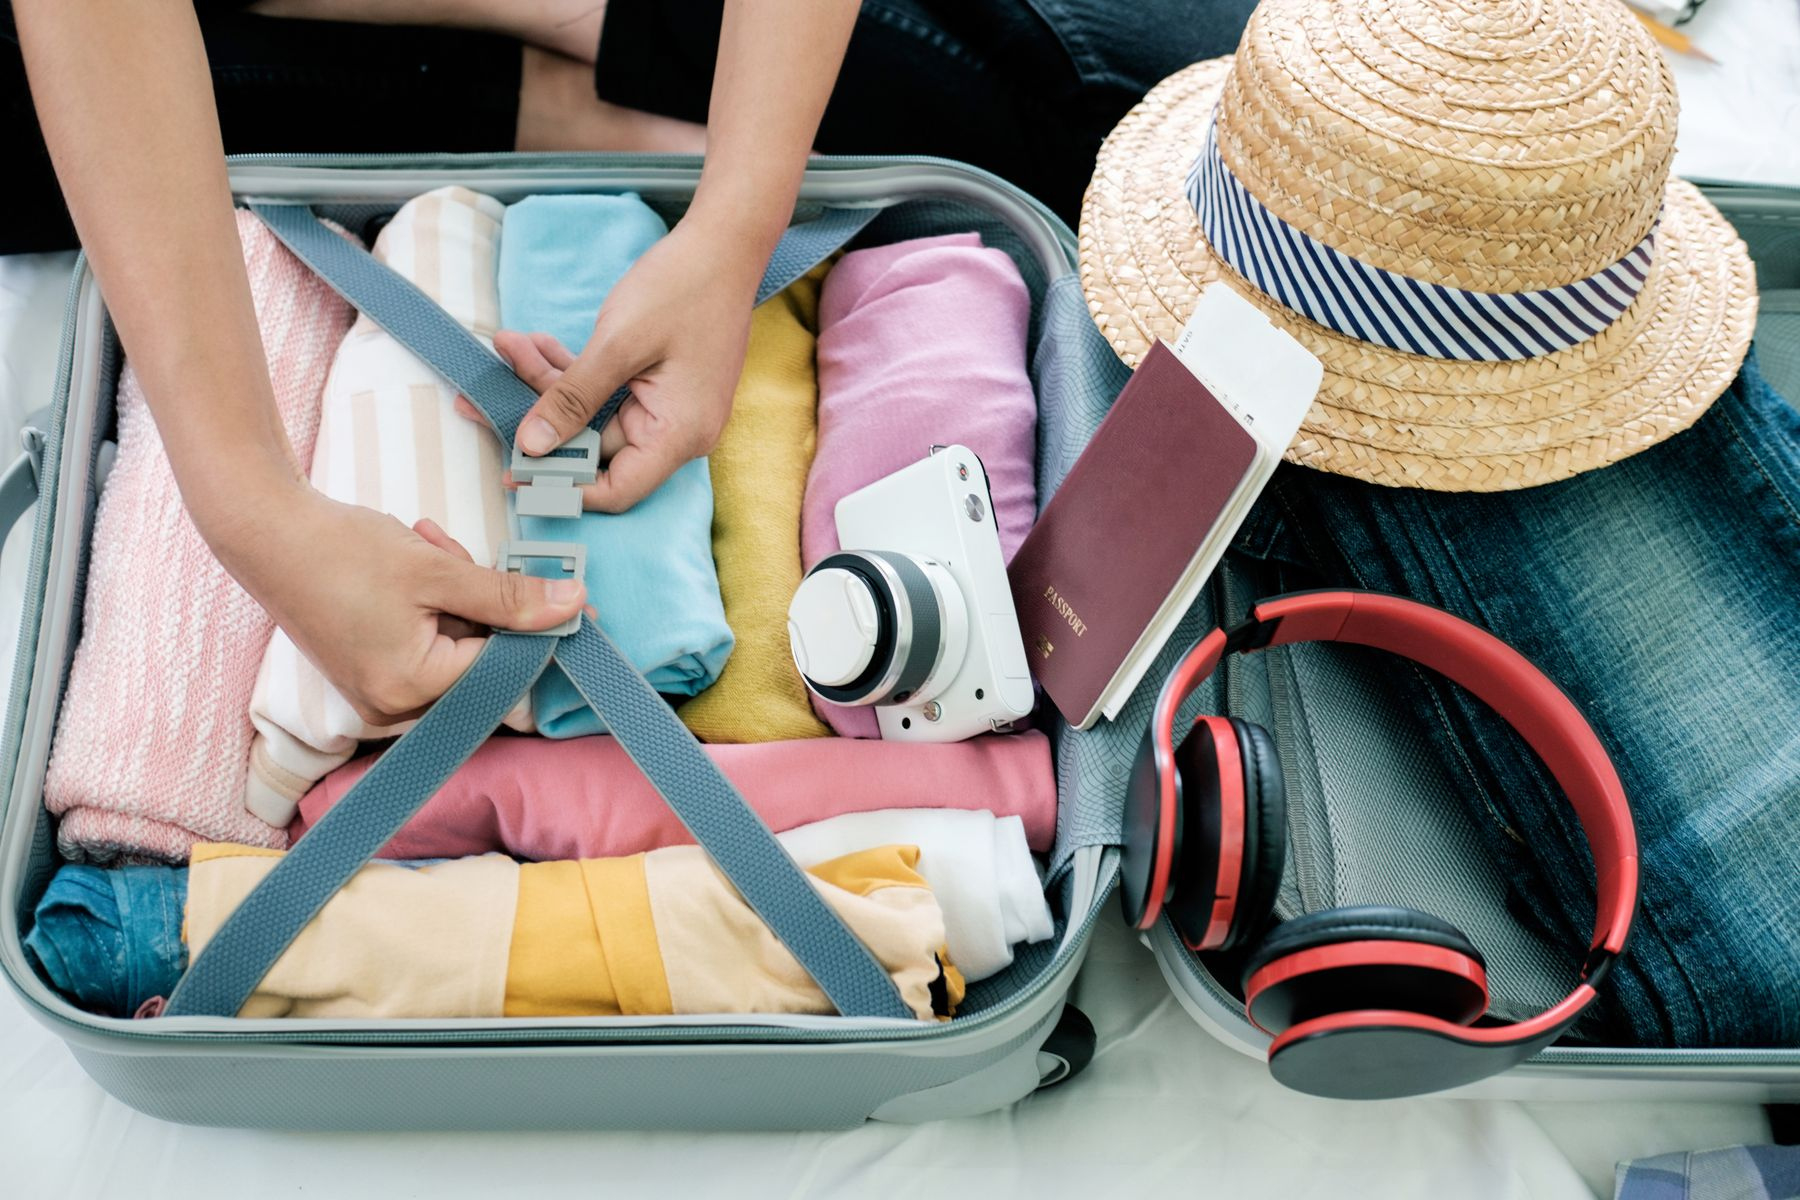 Suitcase filled with rolled items of clothing, with a passport, sun hat and earphones beside it. Someone is securing the clasps.